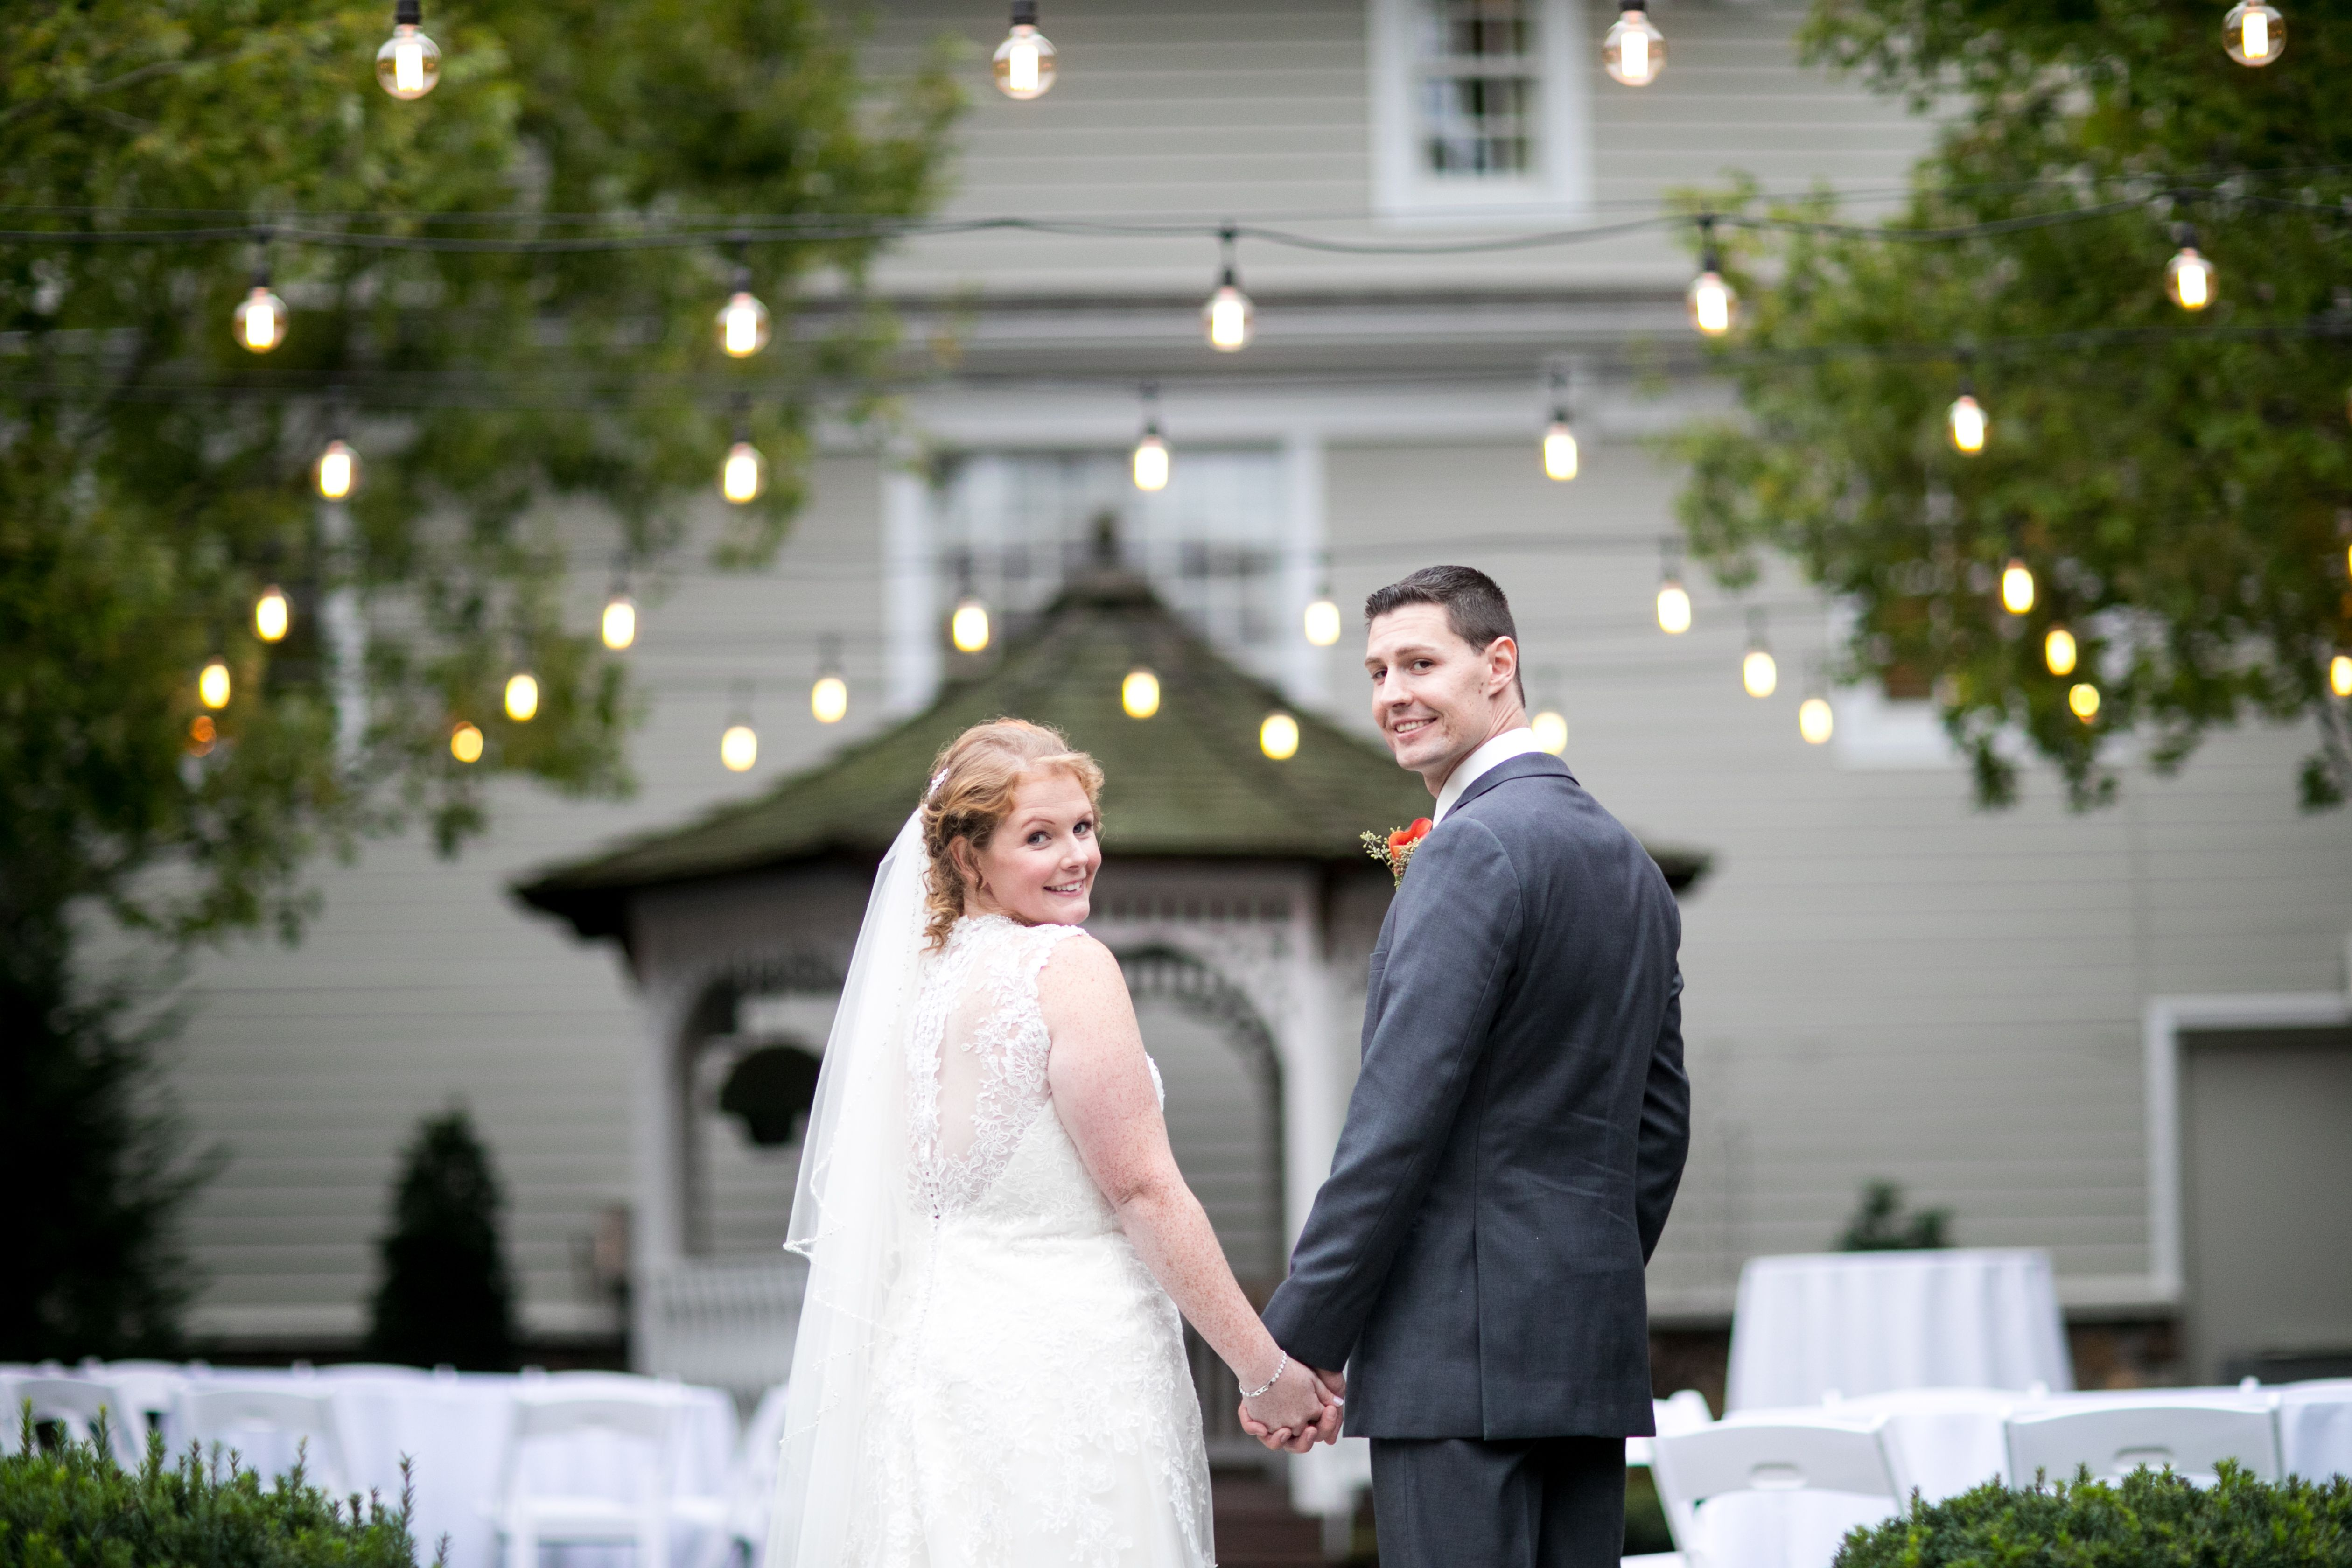 Shannon and Ryan used our Courtyard as the backdrop for their gorgeous wedding photos! (Gary Flom Photography) #Wedding #WeddingVenue #NJWeddings #Unique